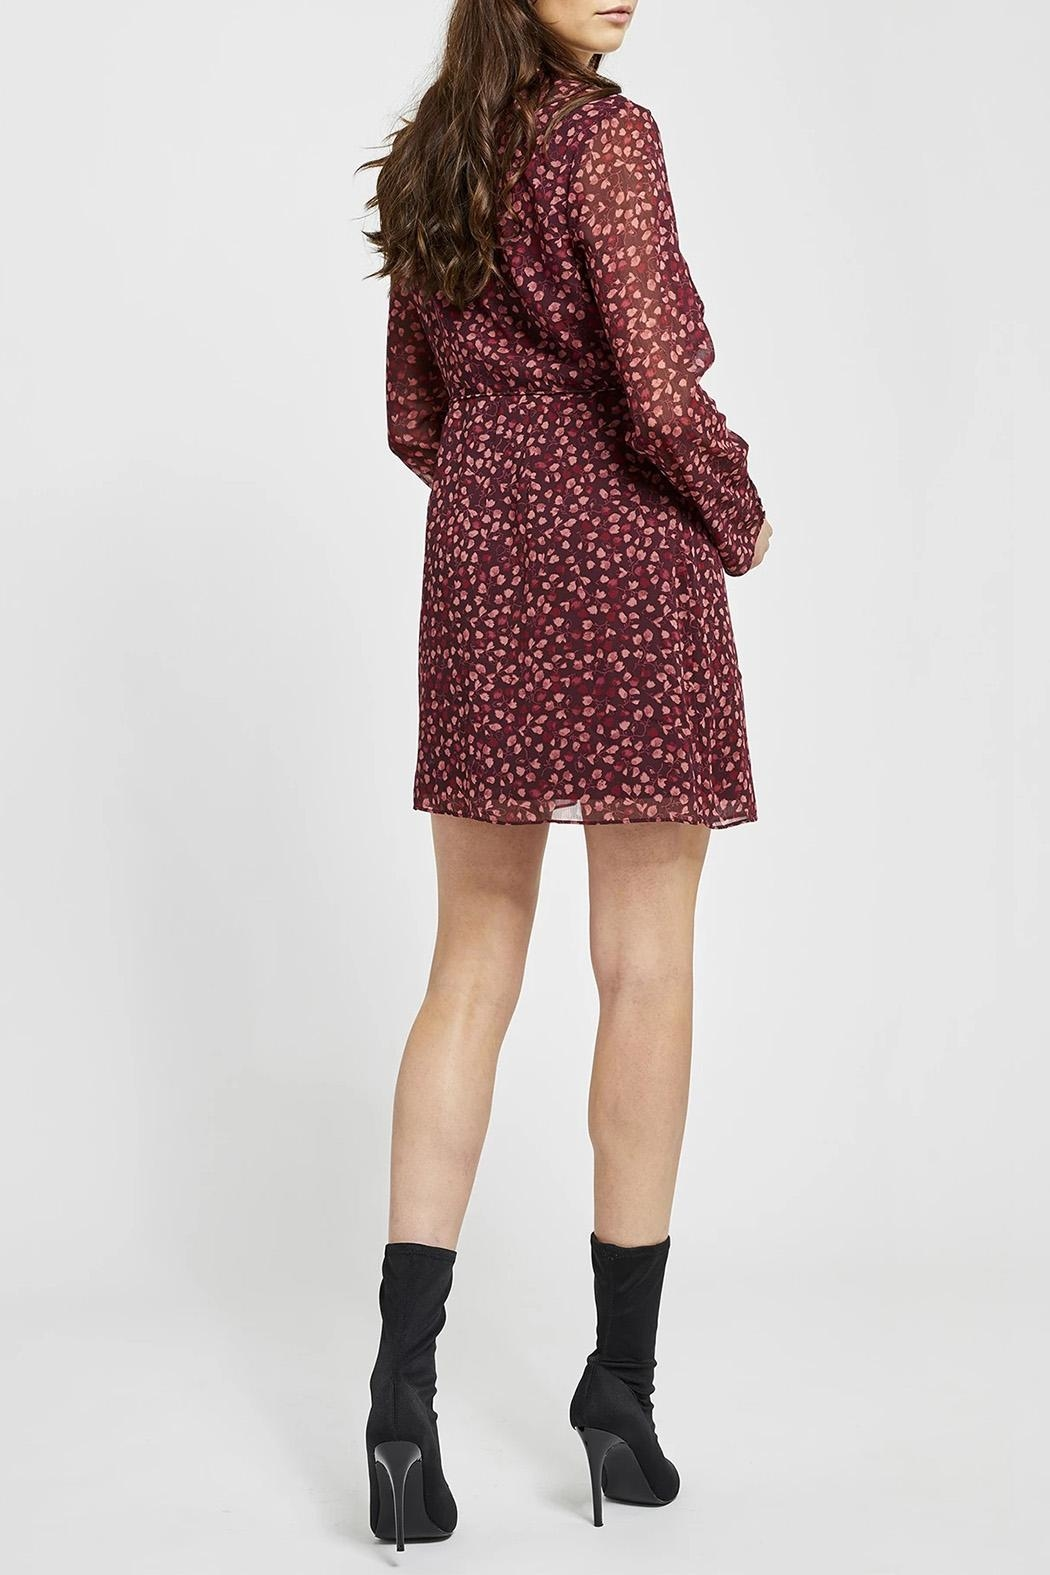 Gentle Fawn Elysian Dress - Side Cropped Image